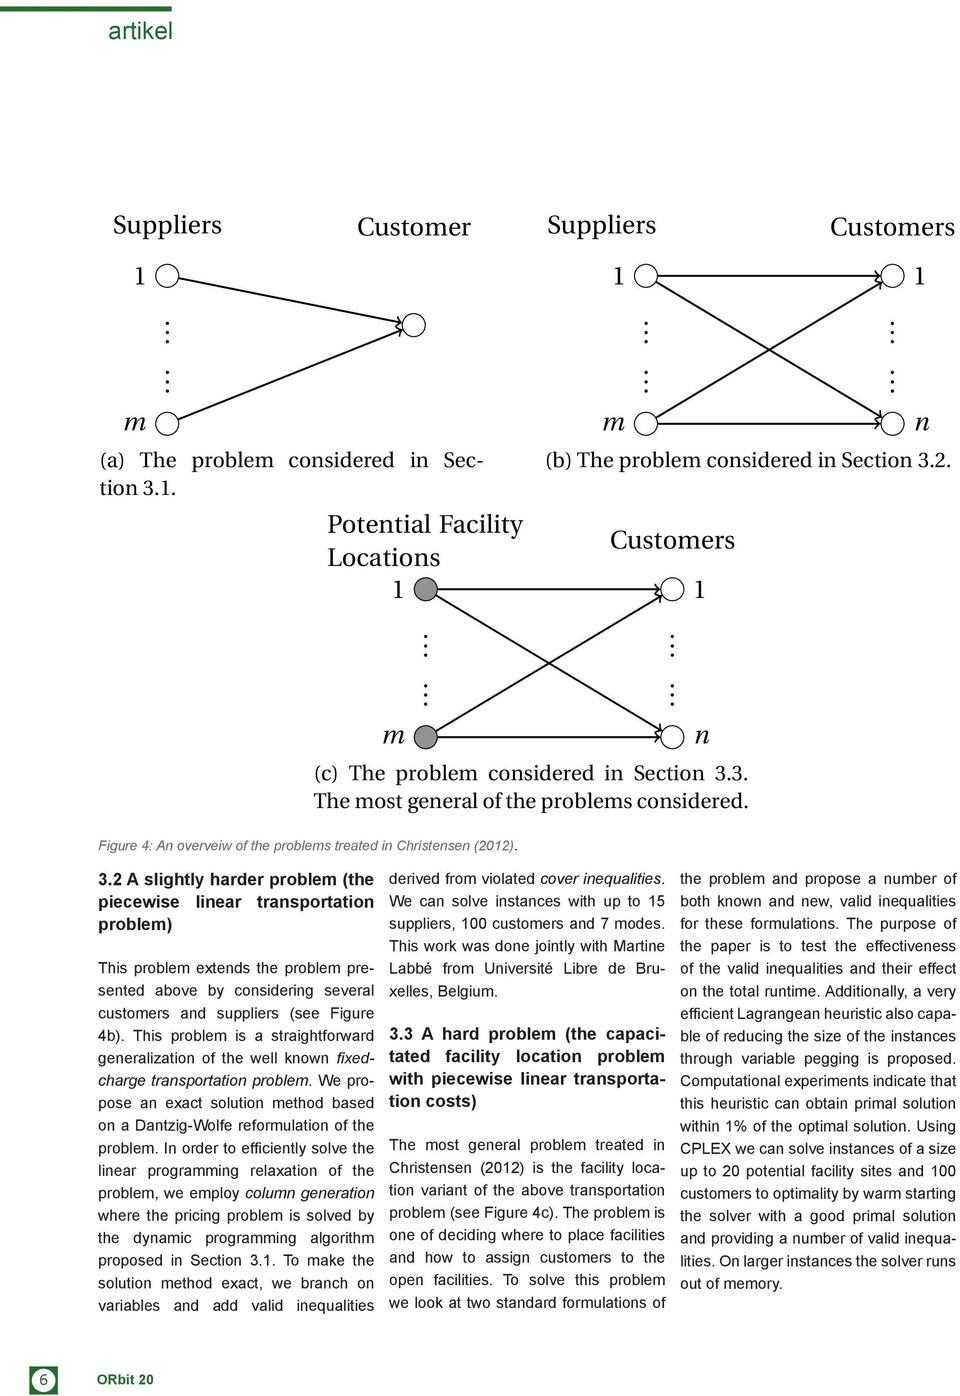 2 A slightly harder problem (the piecewise linear transportation problem) This problem extends the problem presented above by considering several customers and suppliers (see Figure 4b).